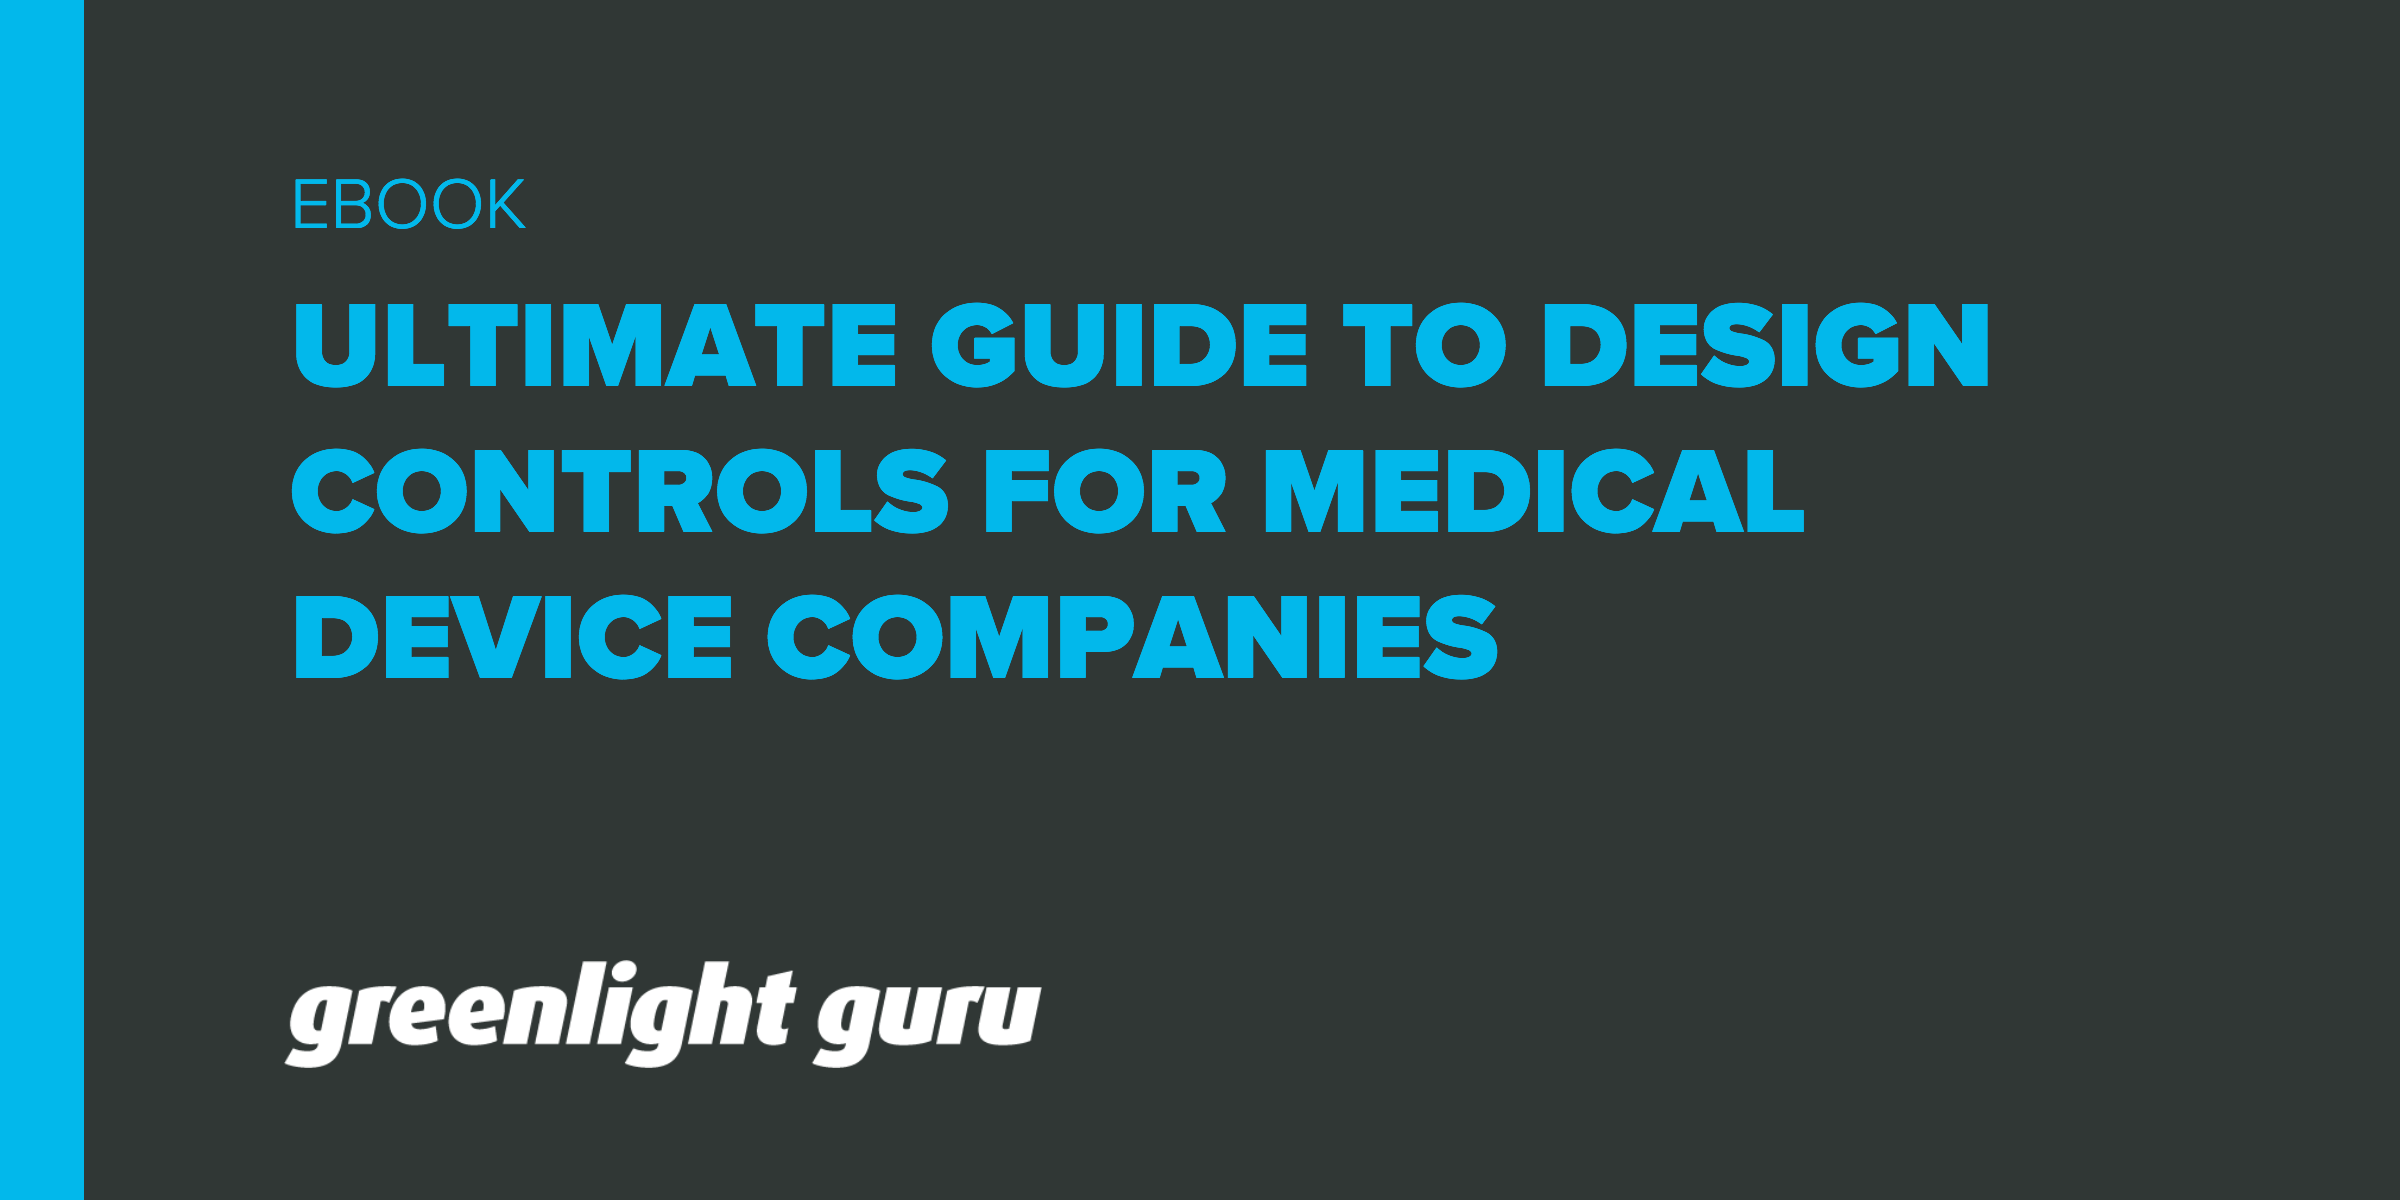 The ultimate guide to design controls for medical device companies fandeluxe Choice Image